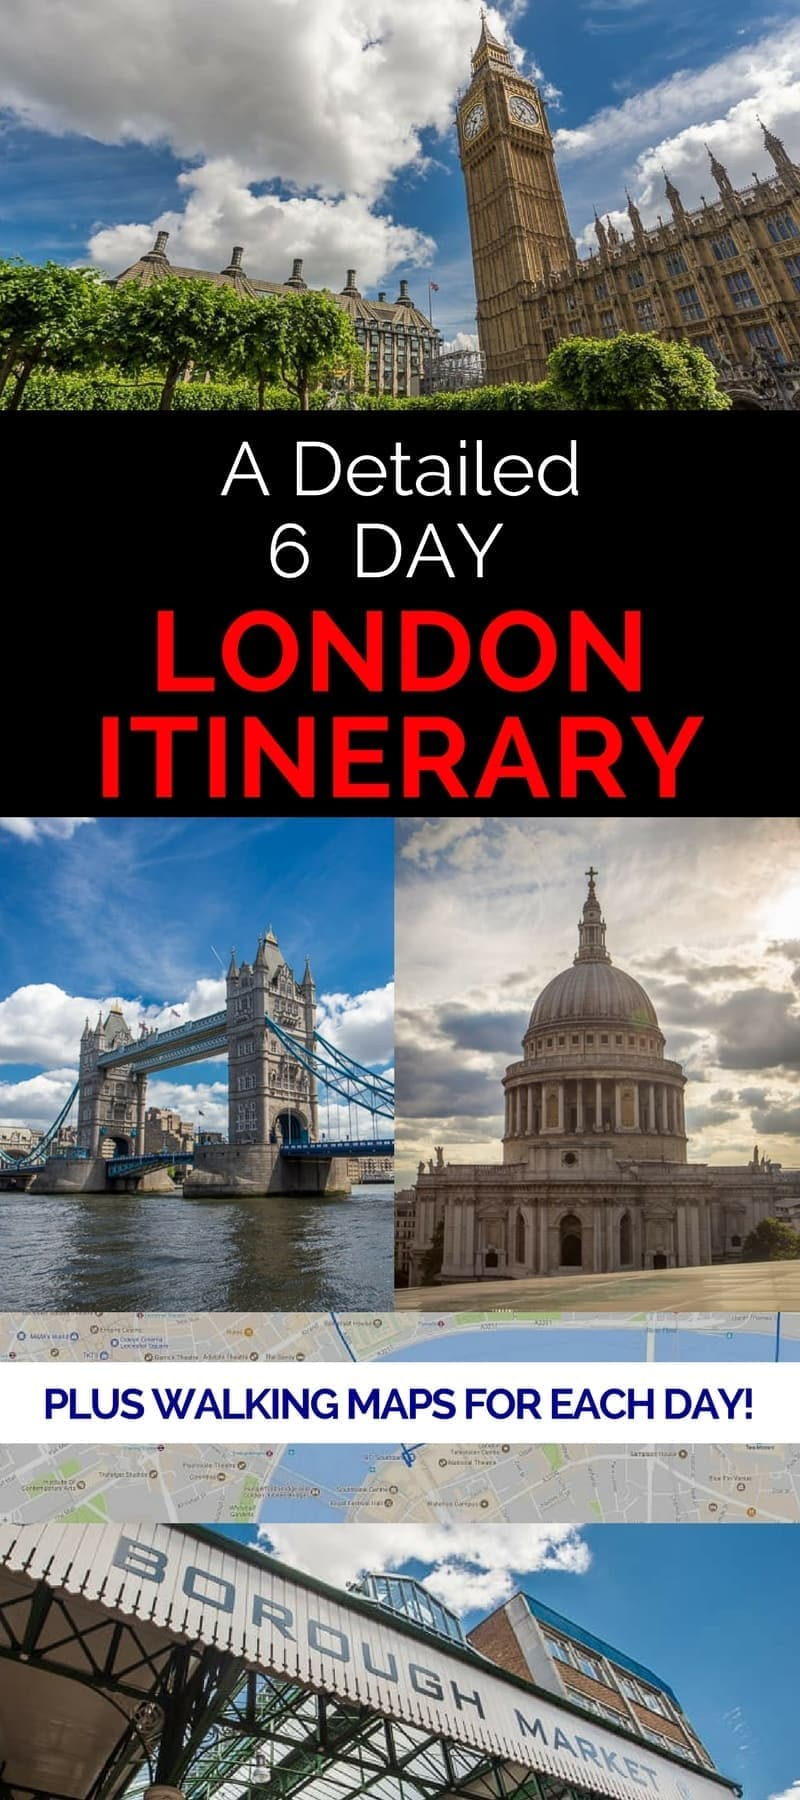 A detailed 6 day London itinerary that provides a detailed suggested itinerary for each day, daily walking maps, tips on how to save money, and loads of suggestions on how to make the most of your six days in London England.